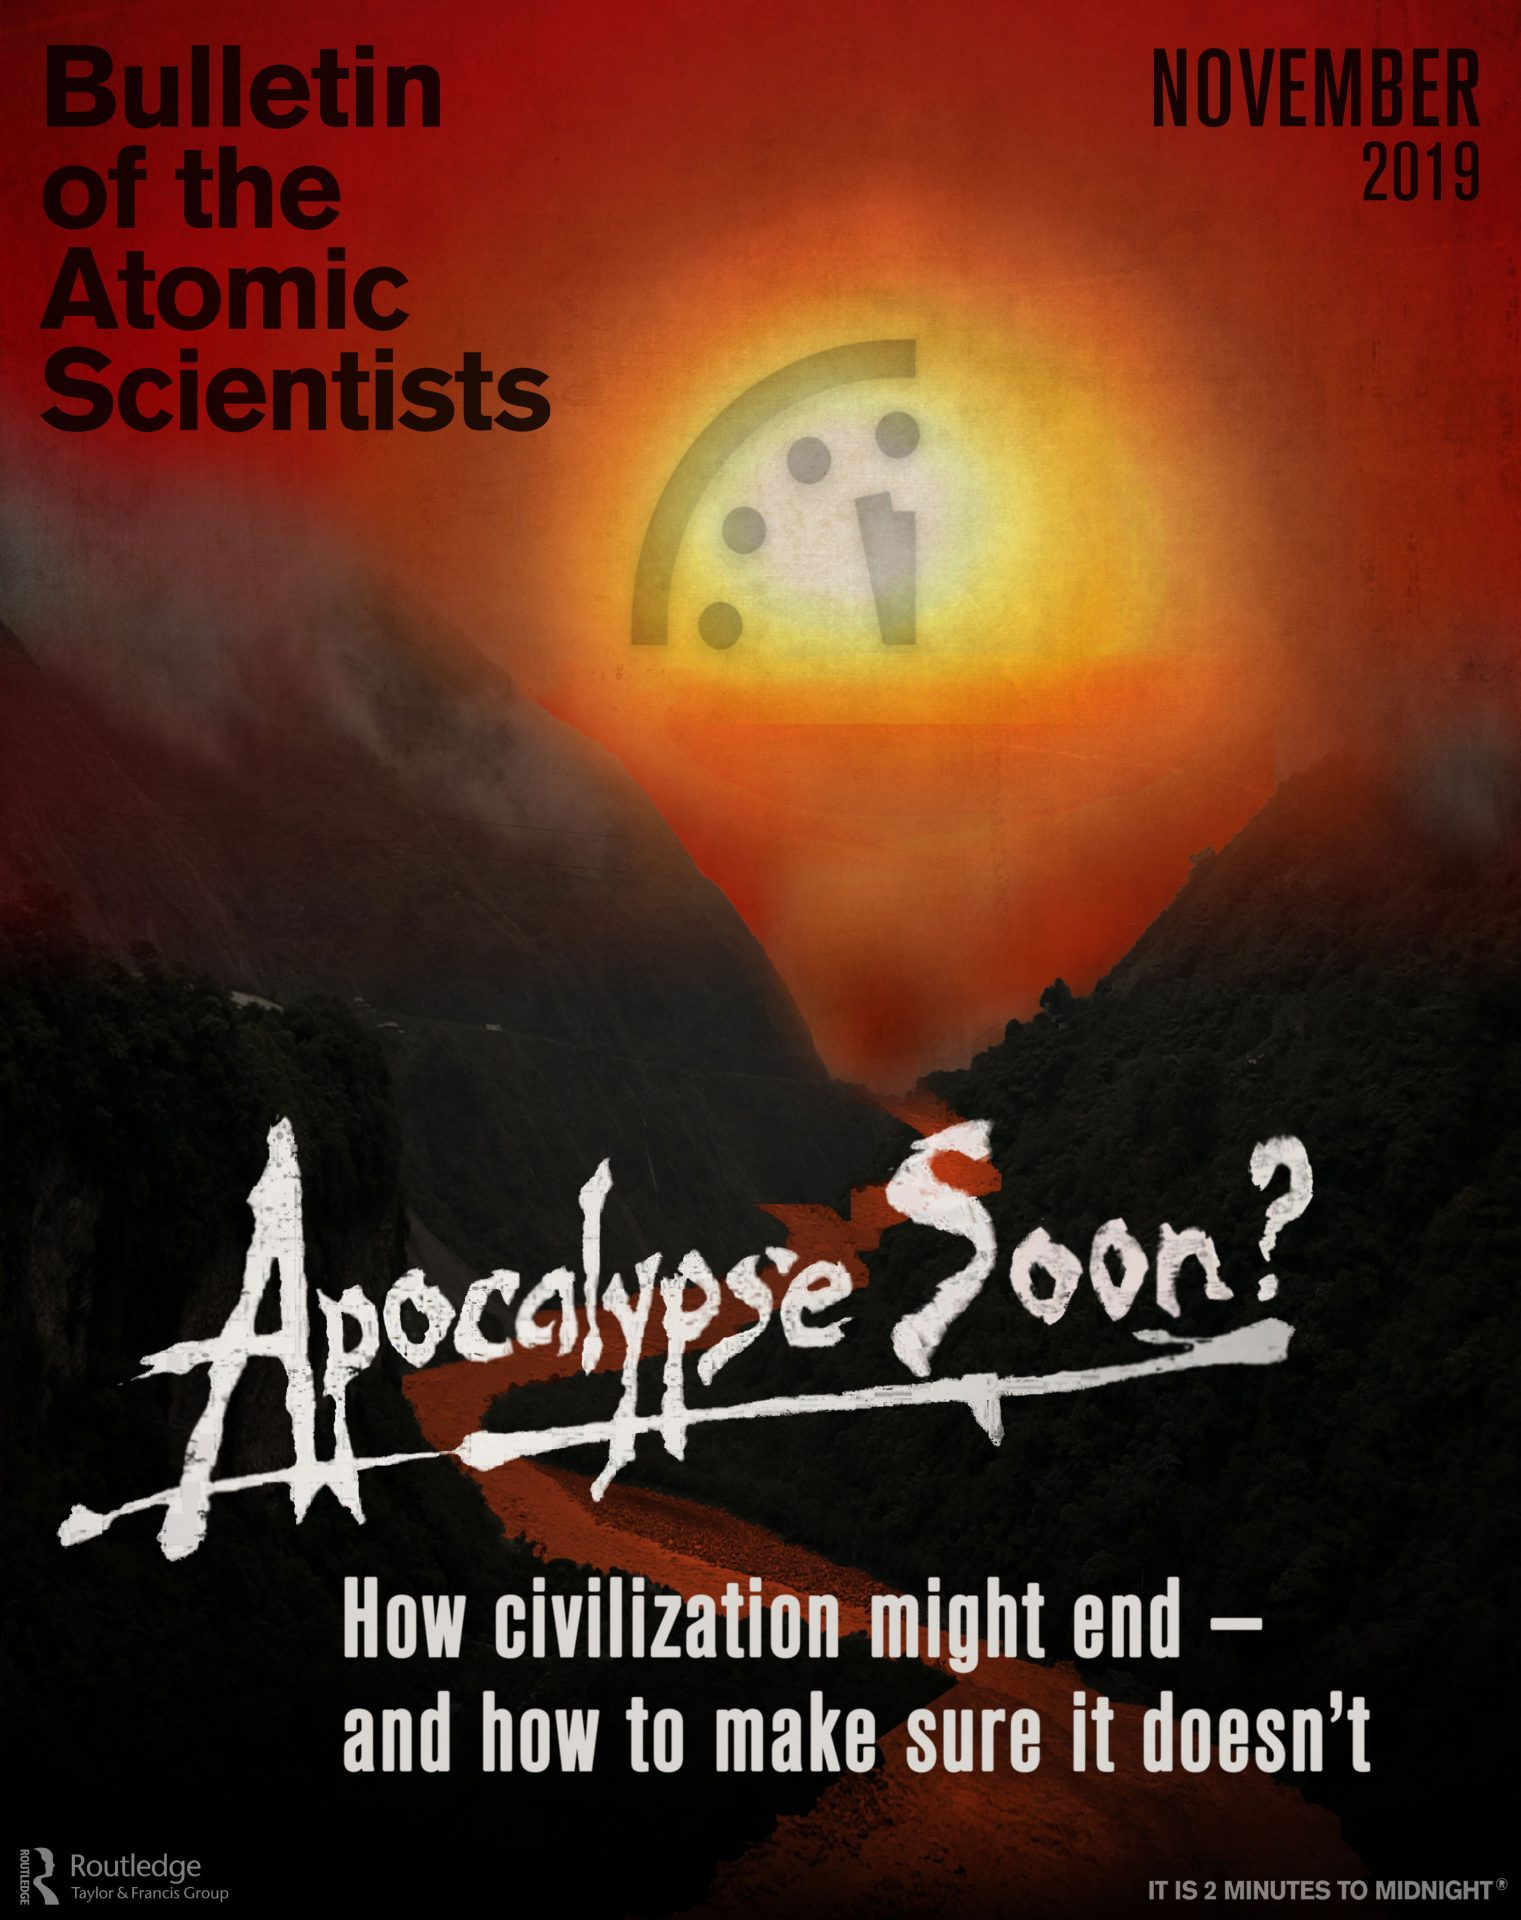 November 2019 Bulletin of the Atomic Scientists cover image